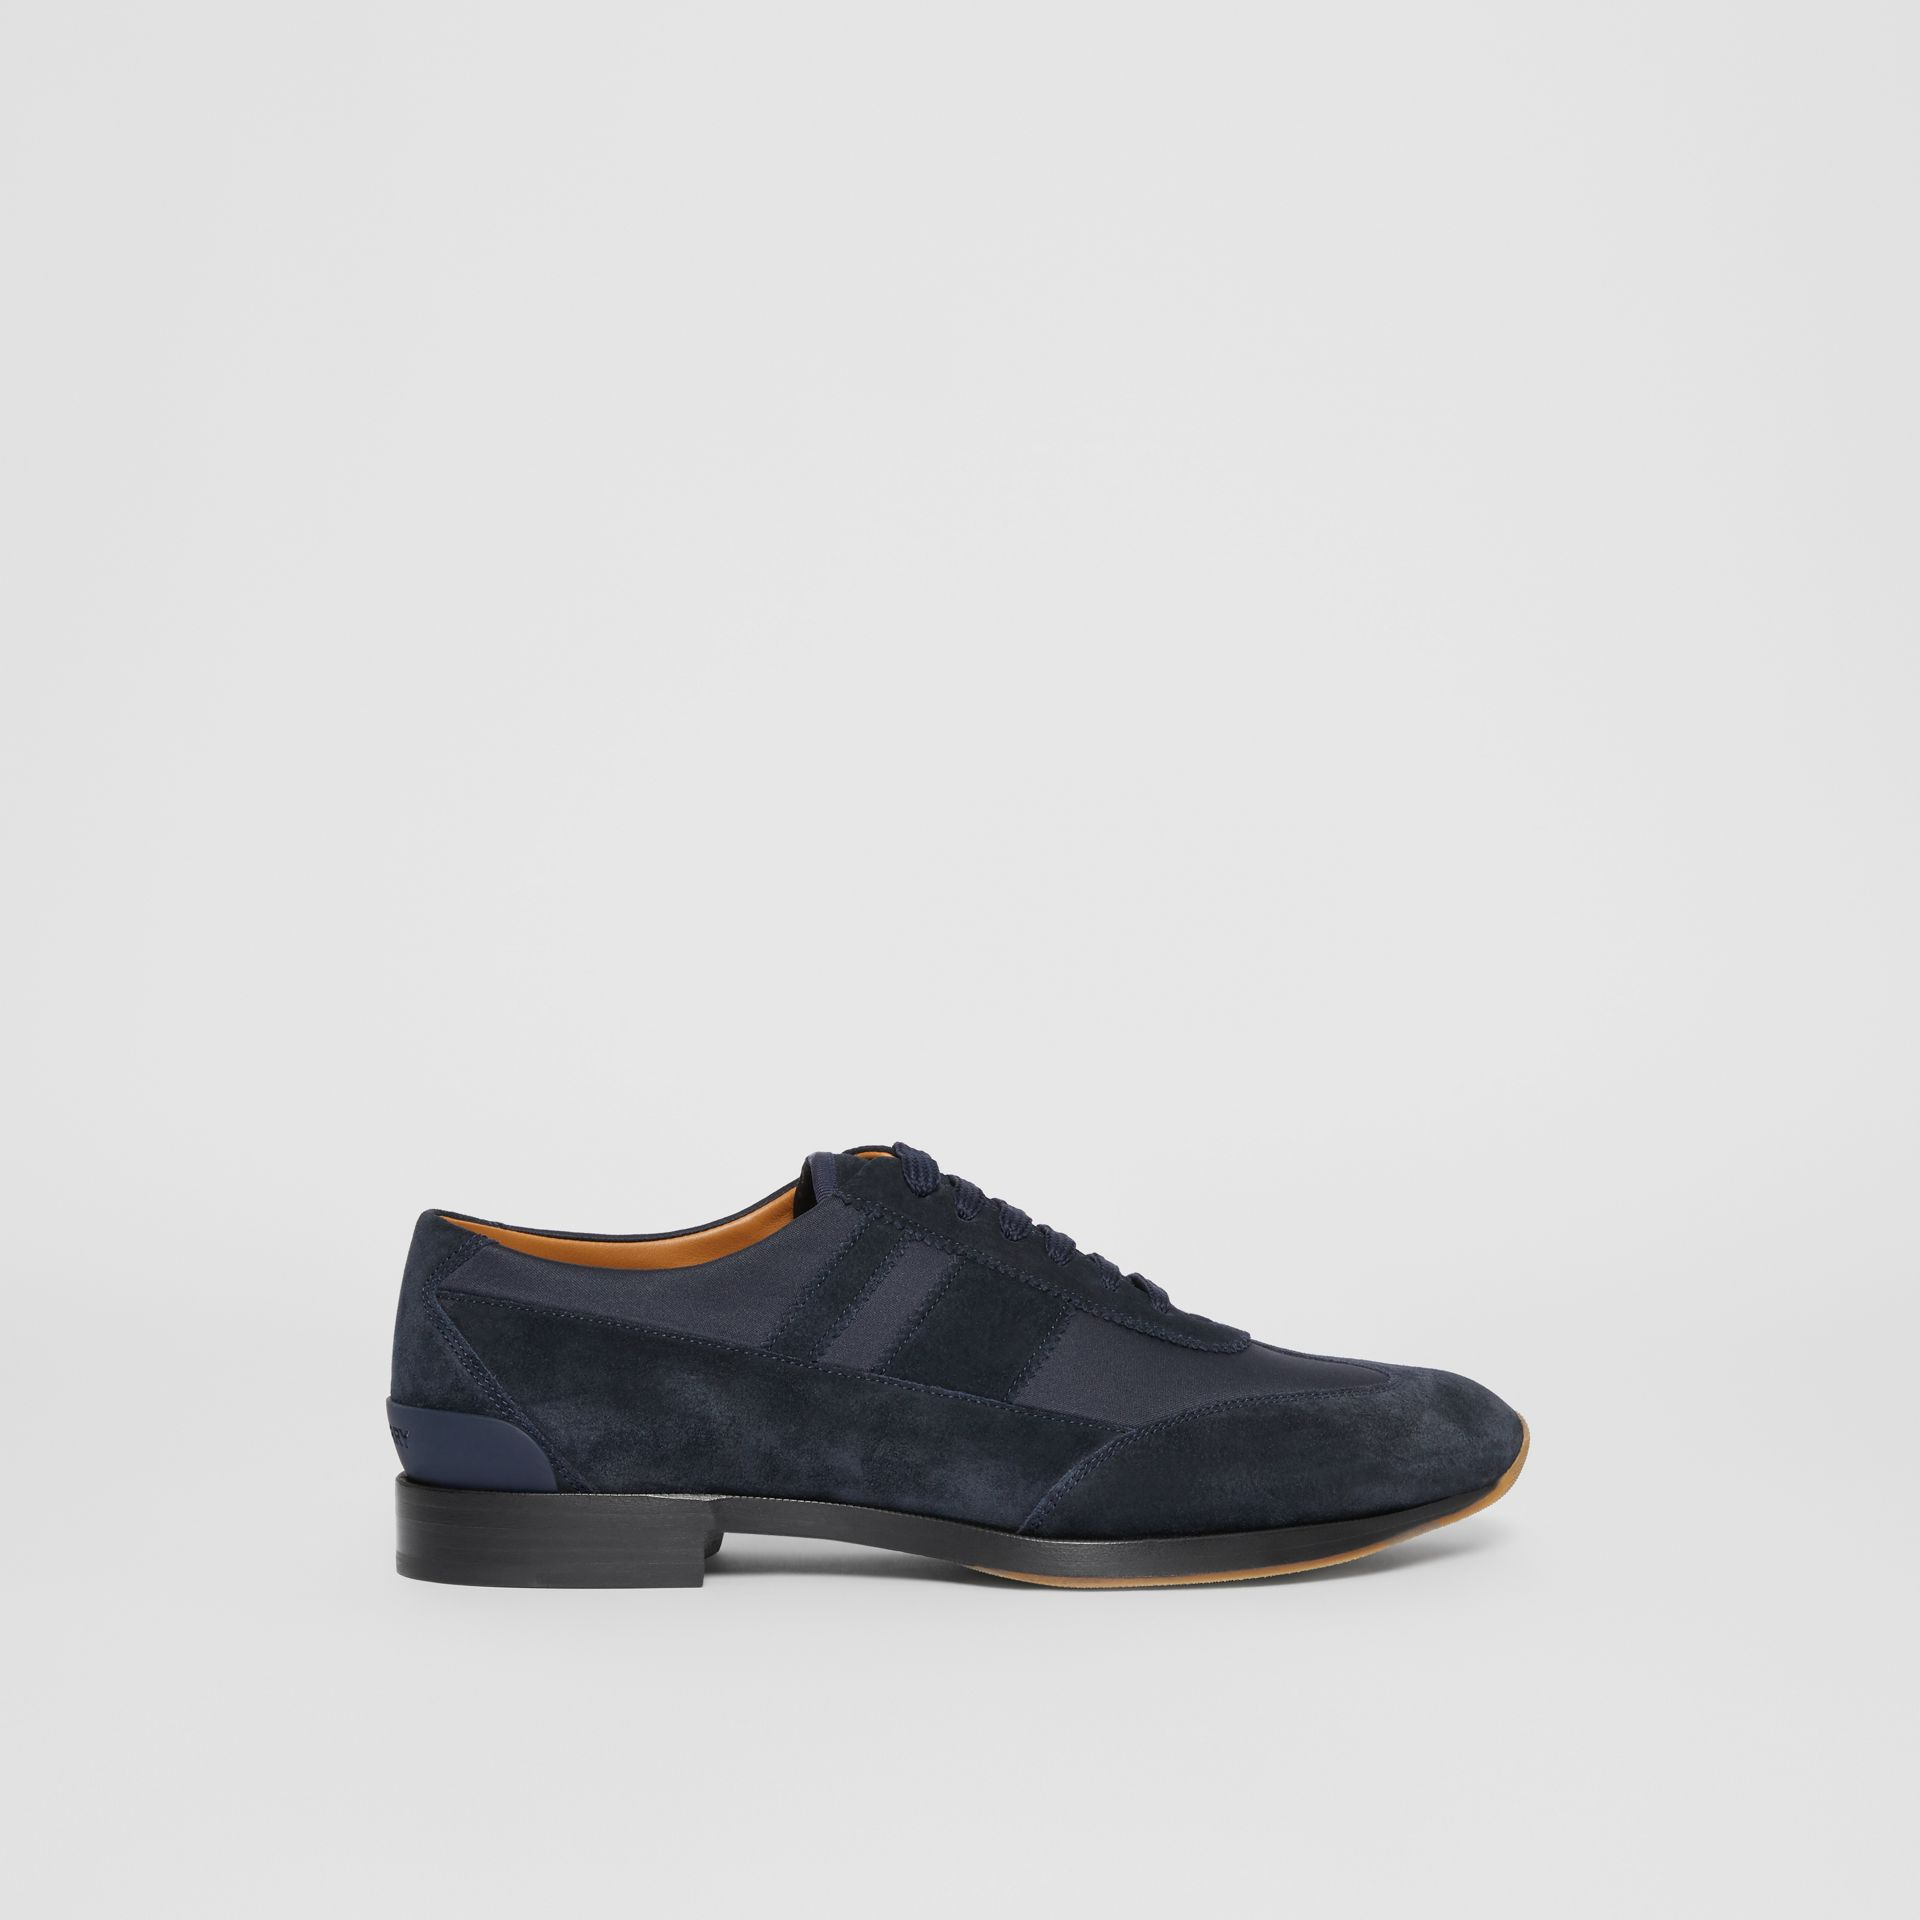 Neoprene Panel Suede Lace-up Shoes in Navy - Men | Burberry - gallery image 4